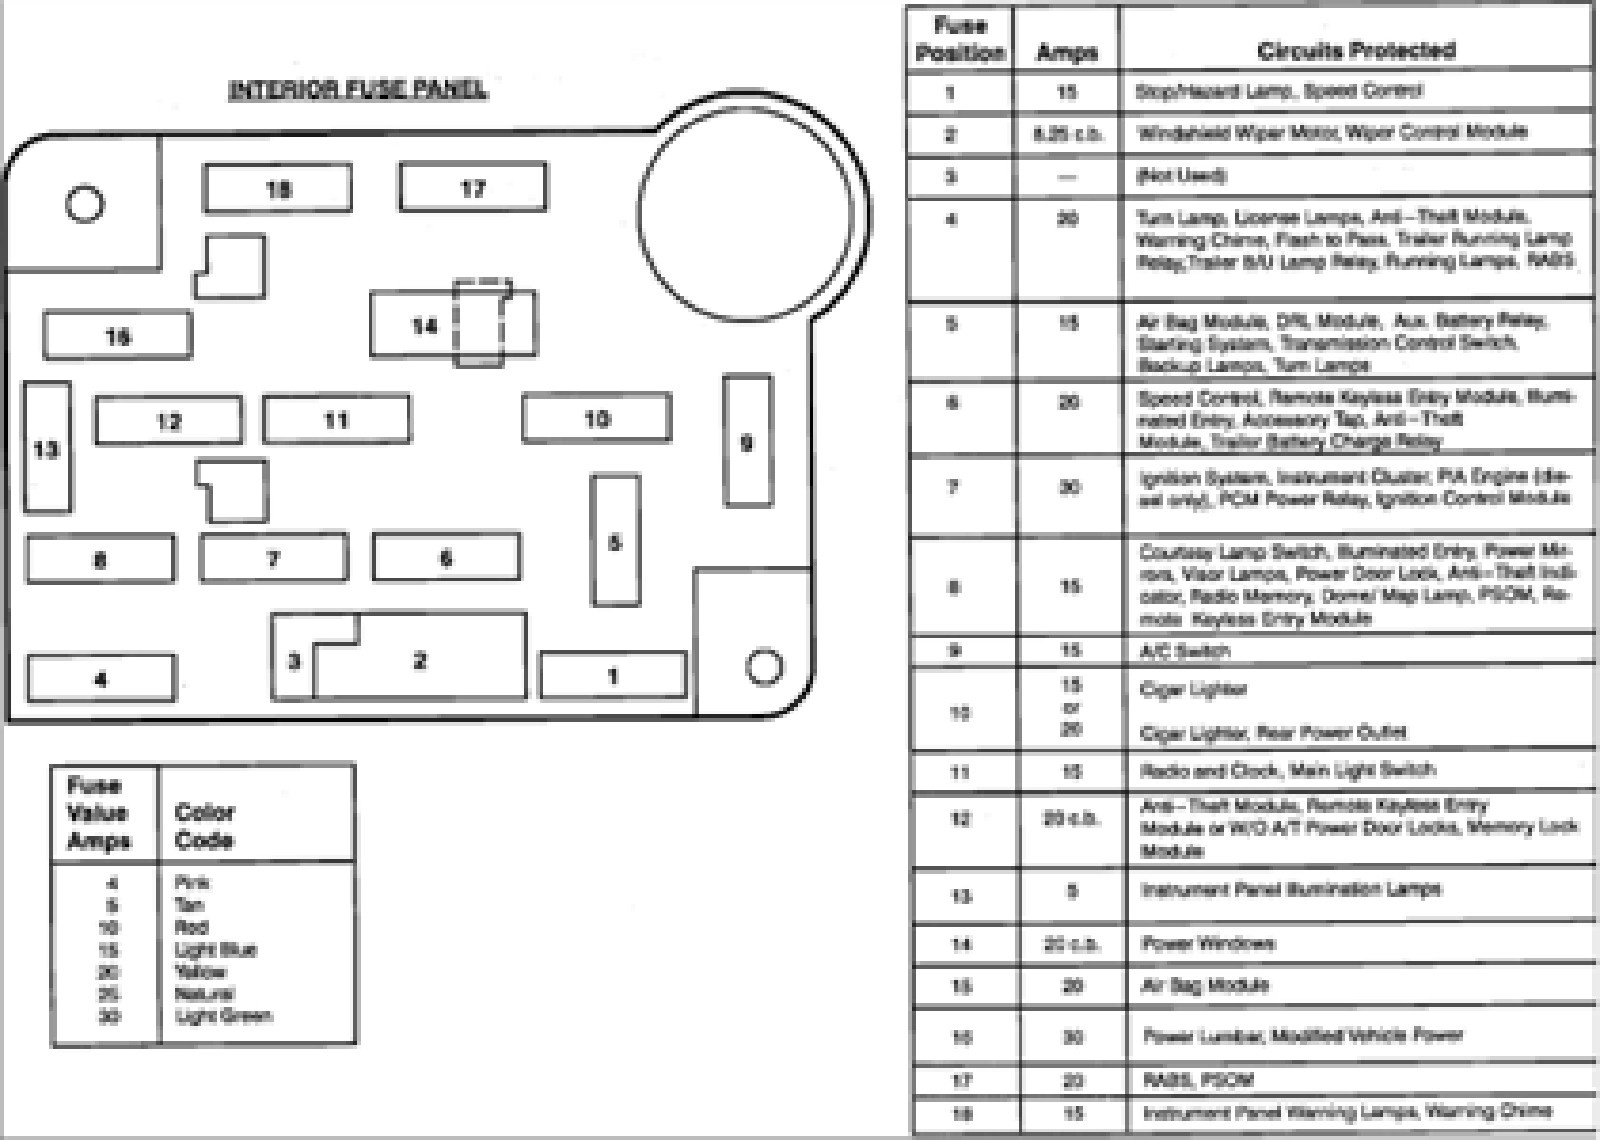 pic 8862473225641007897 1600x1200 1989 ford ranger fuse box diagram 1994 ford ranger fuse box layout 1997 f350 fuse box diagram under the hood at edmiracle.co